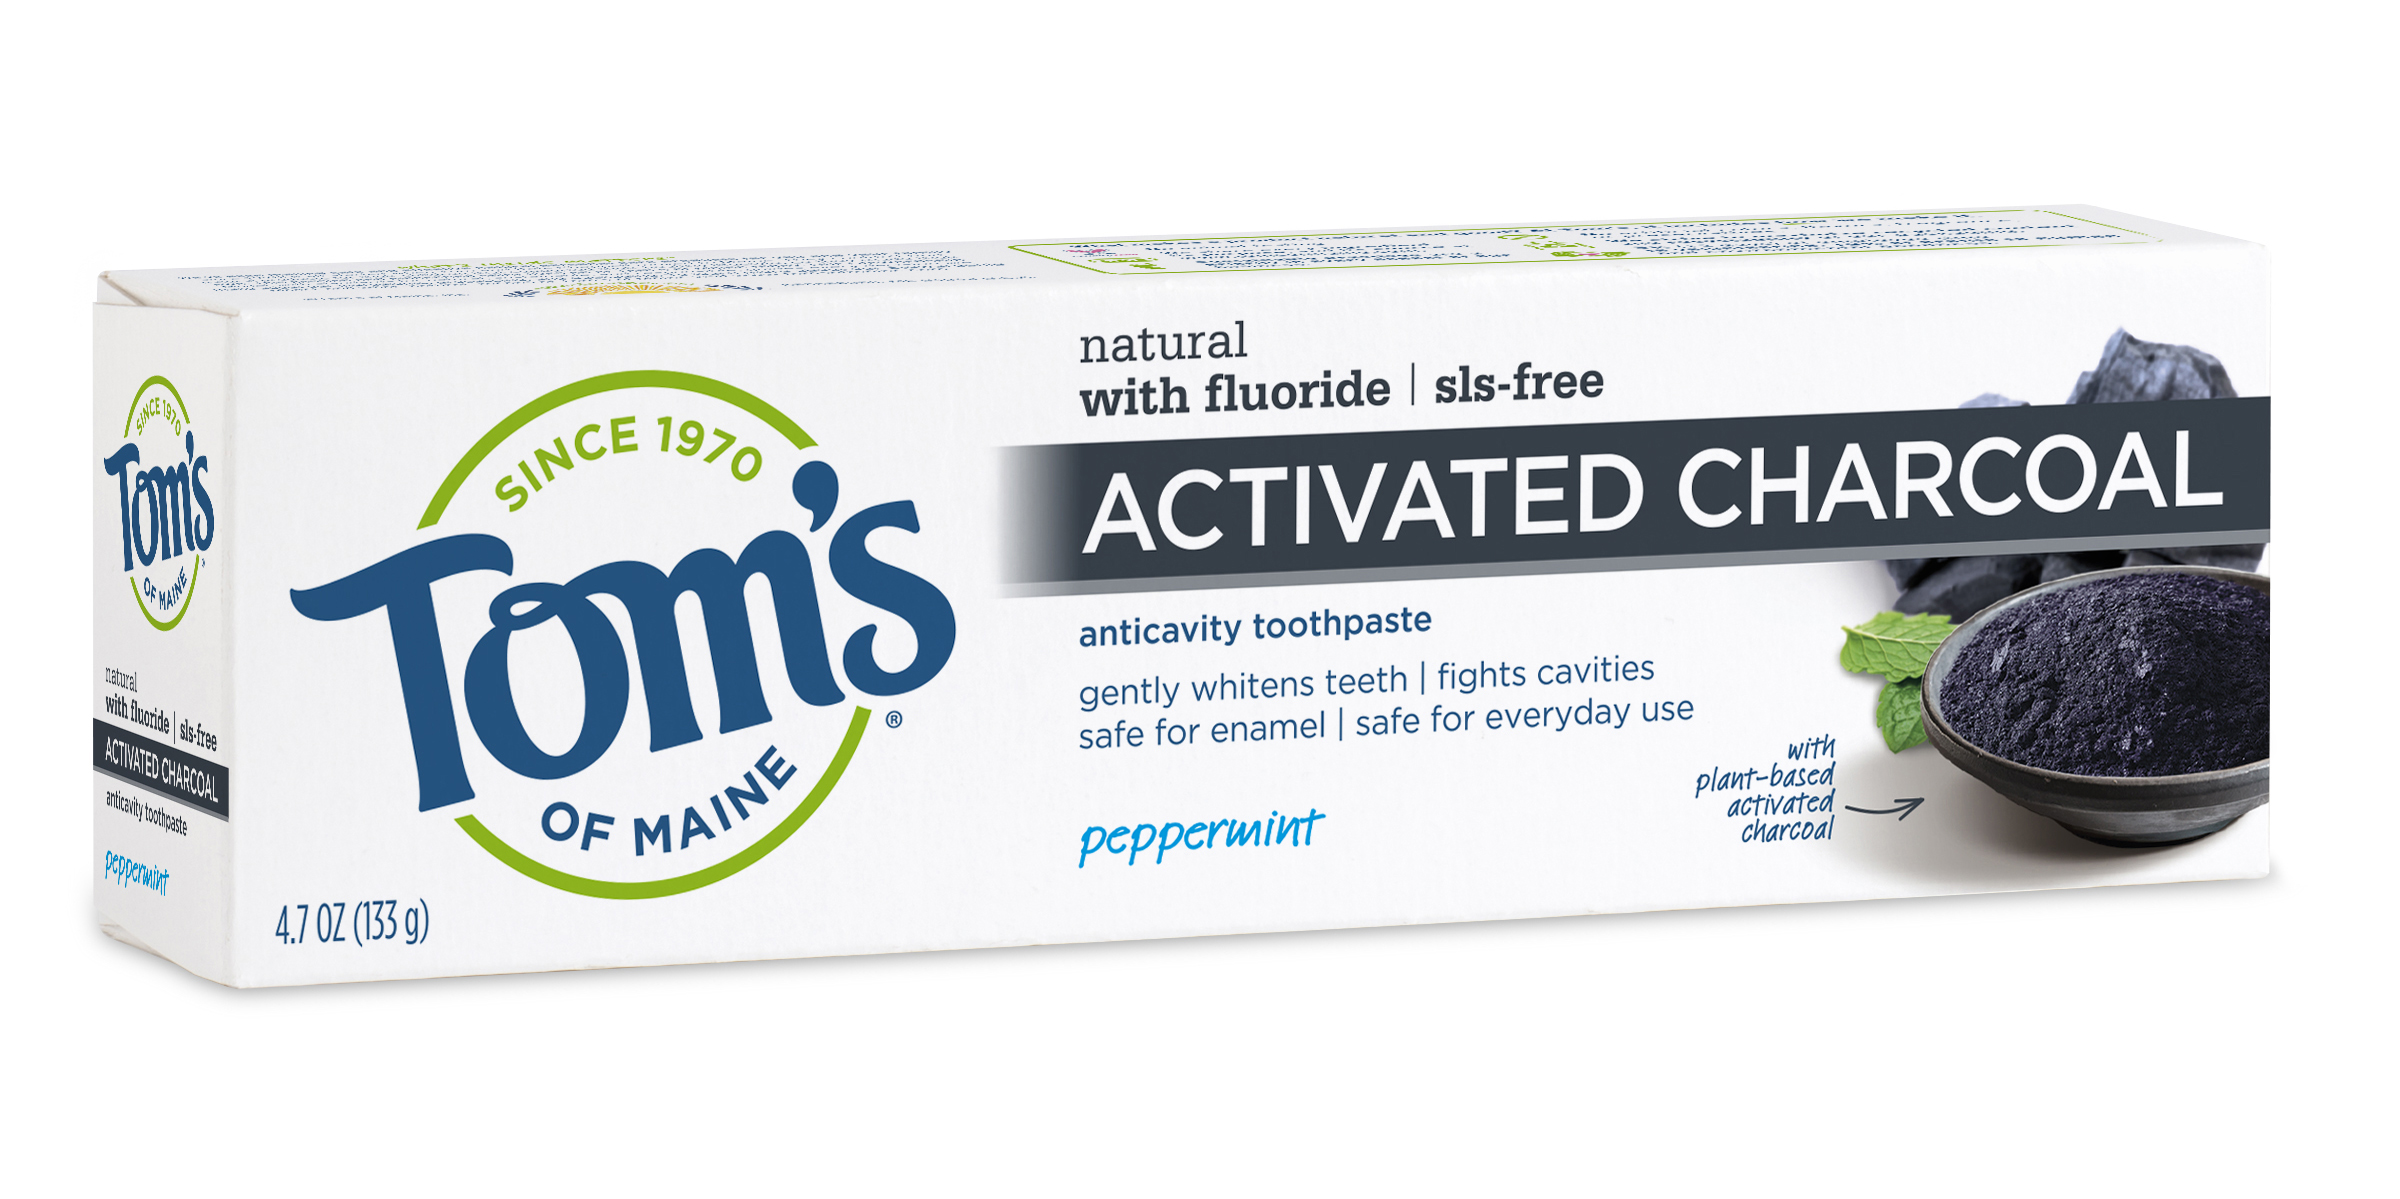 Tom's-Activated-Charcoal-Toothpaste-Anticavity.jpg